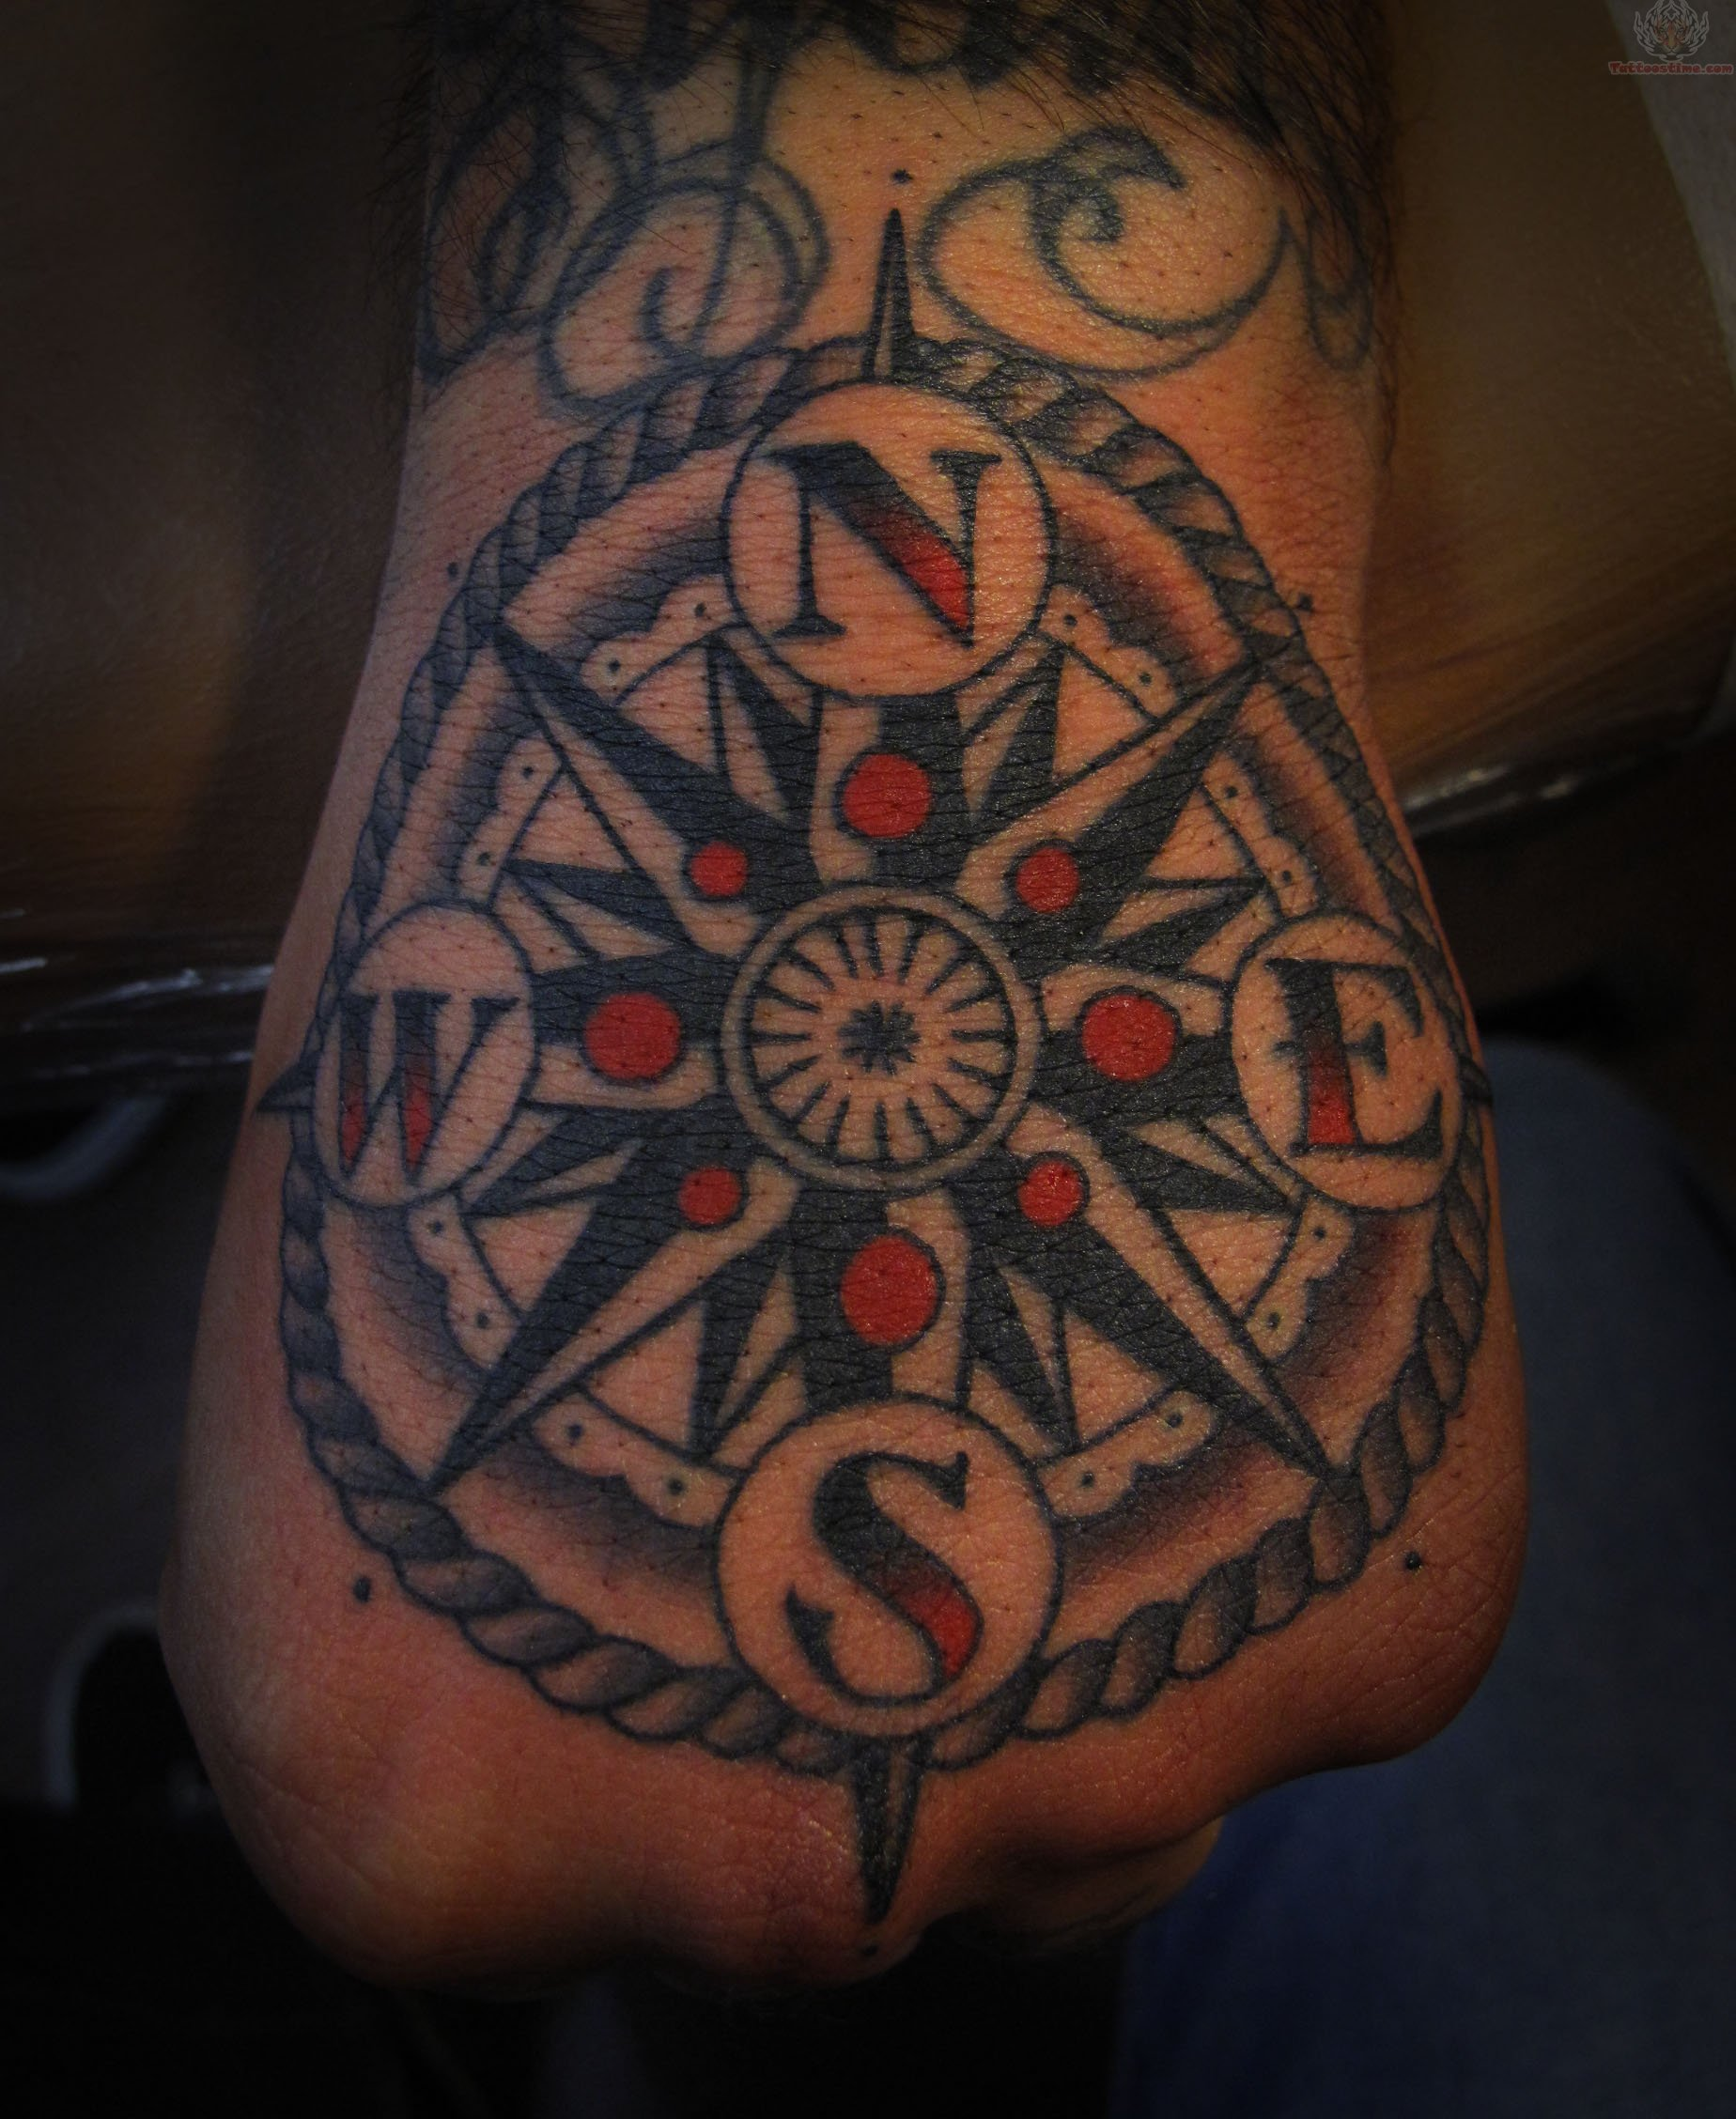 color-ink-compass-tattoo-on-hand